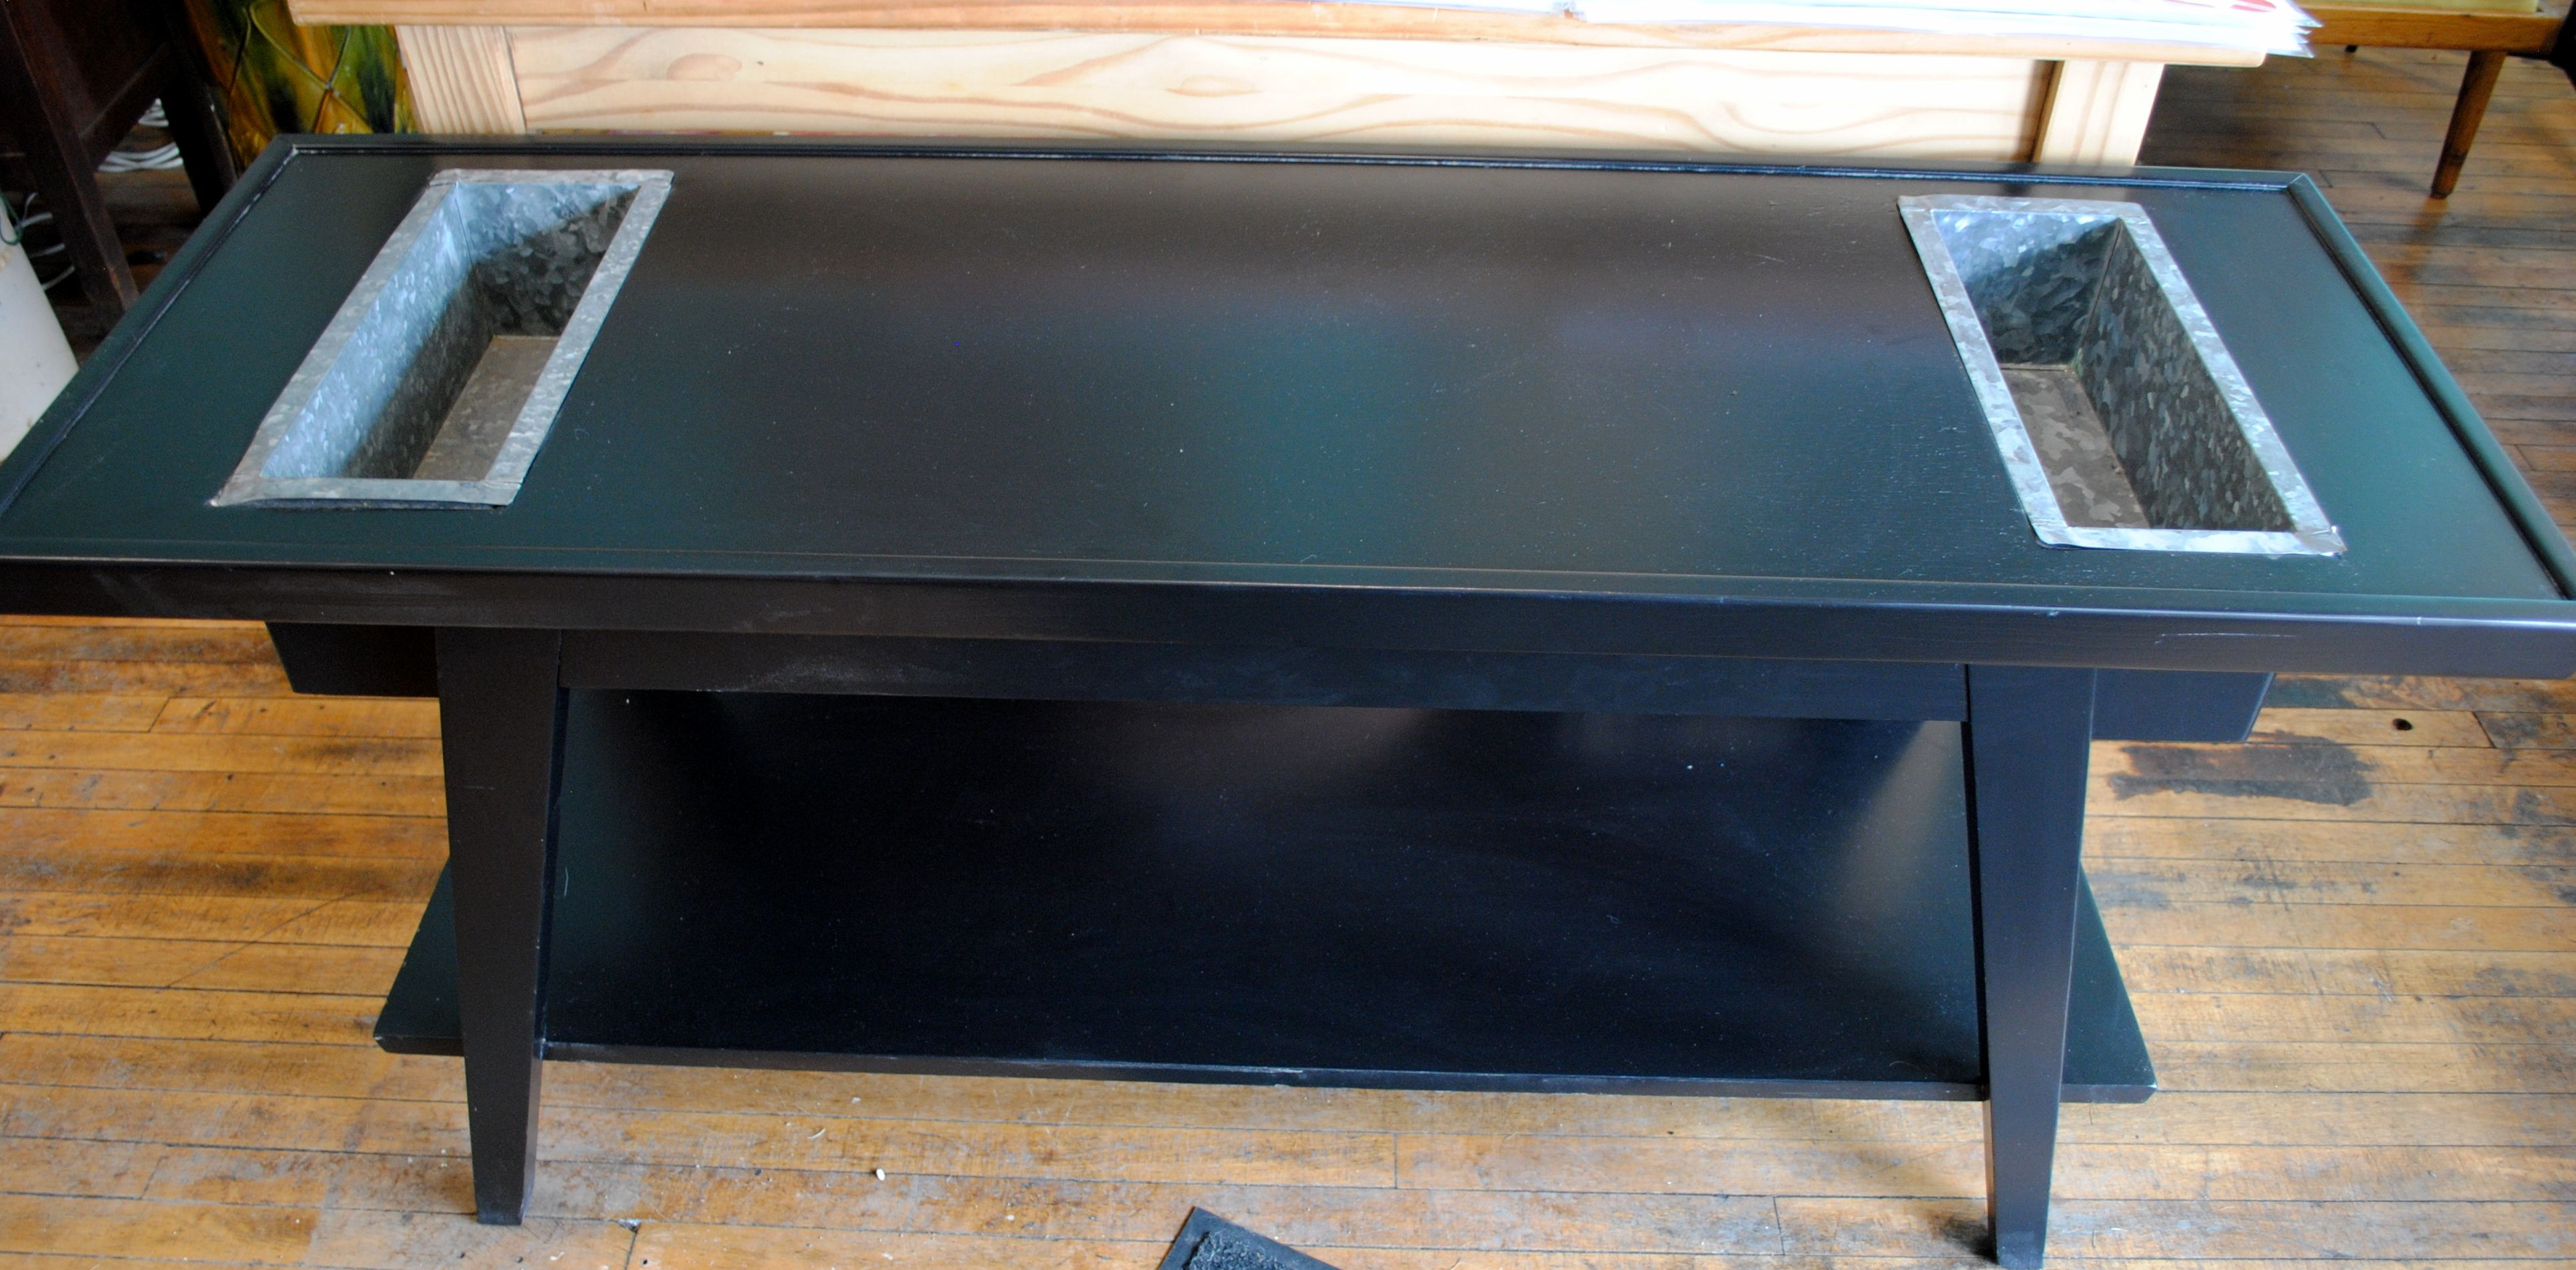 Us sofa table and planter by lane furniture black lacquered